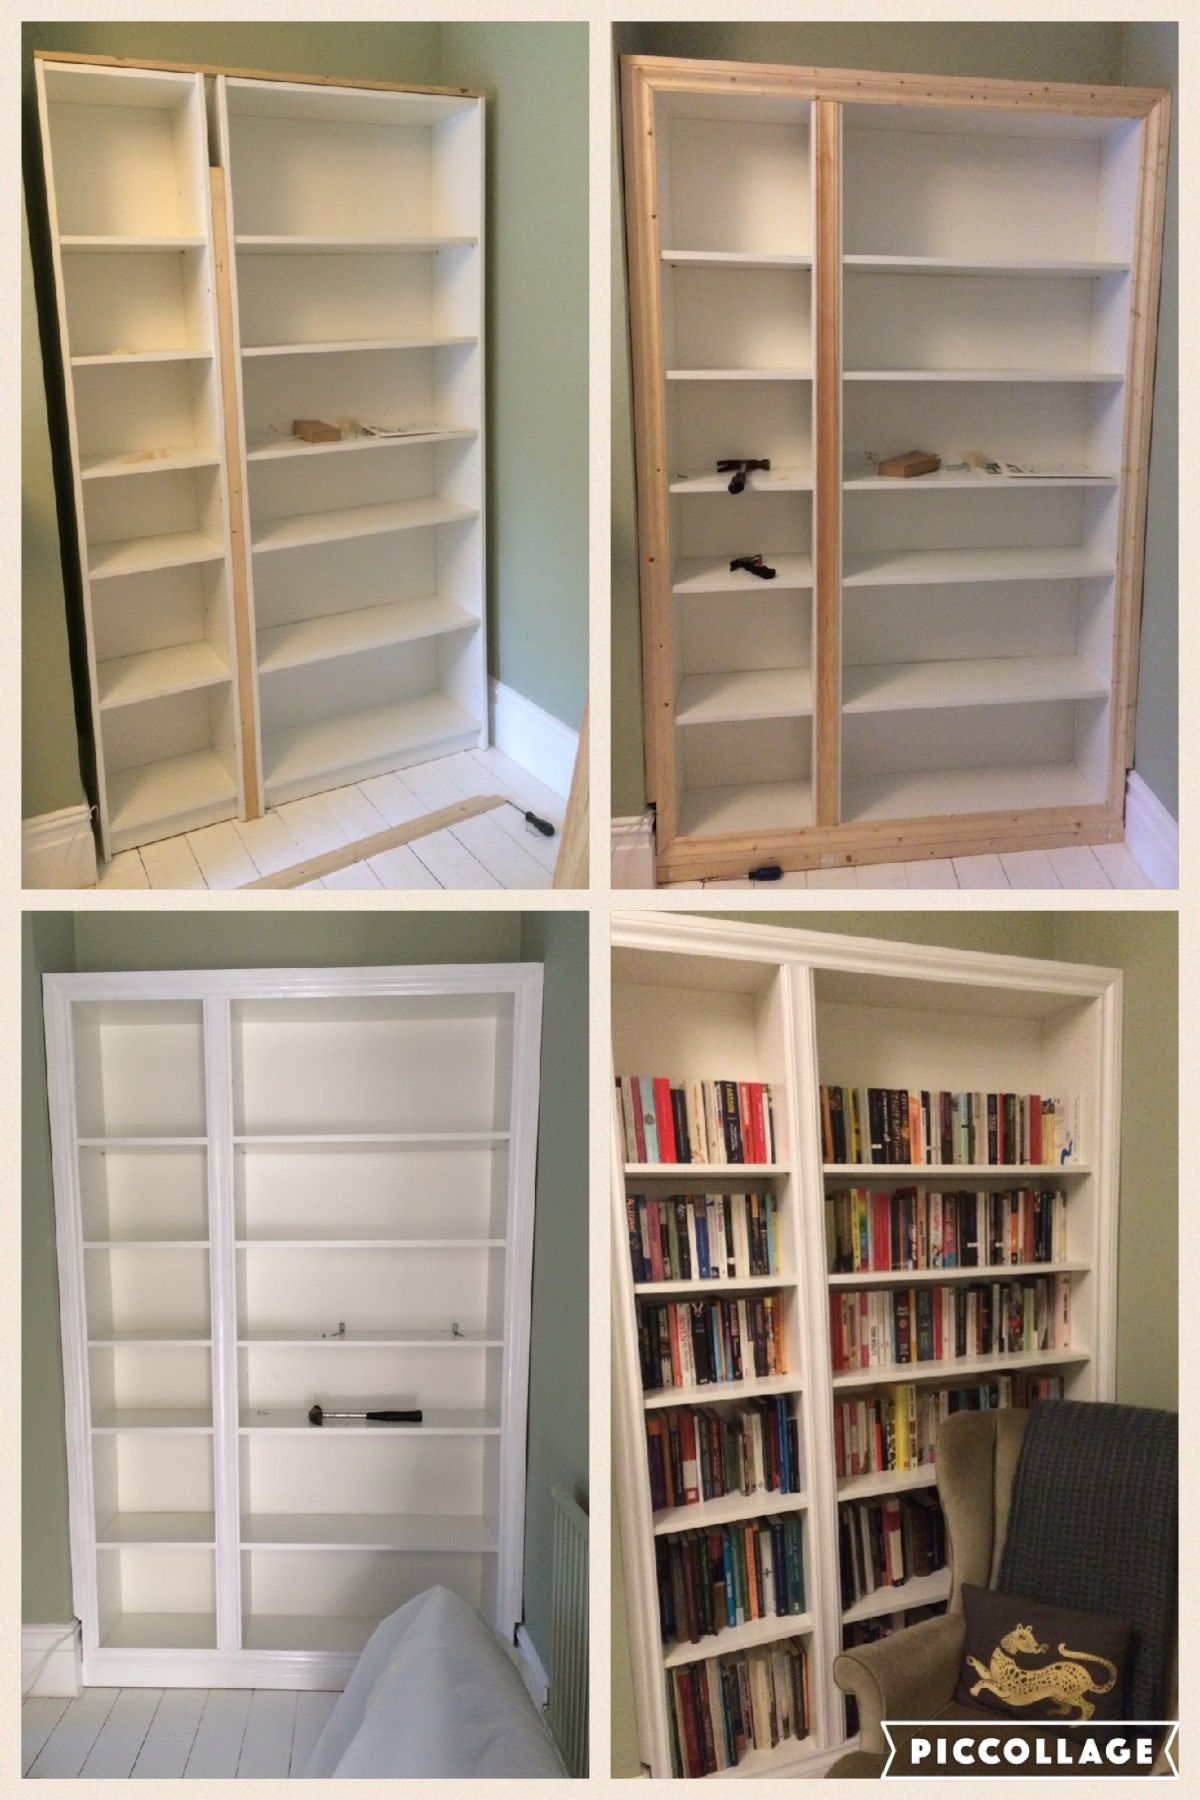 IKEA Hack Billy Bookcase Modified To Look Like Built In Alcove Shelving